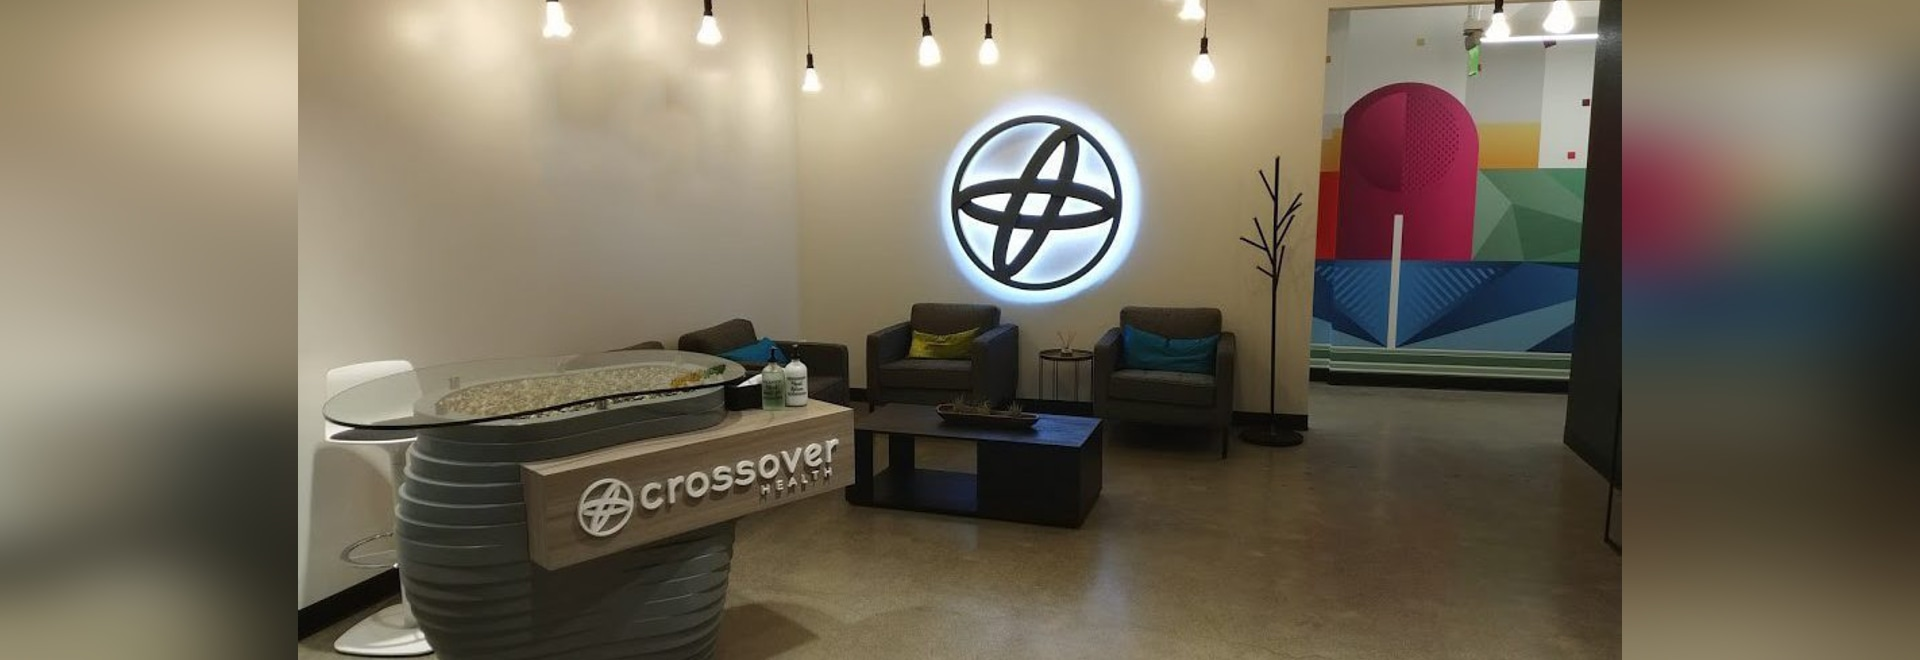 Crossover Health Opens Flagship Health Center